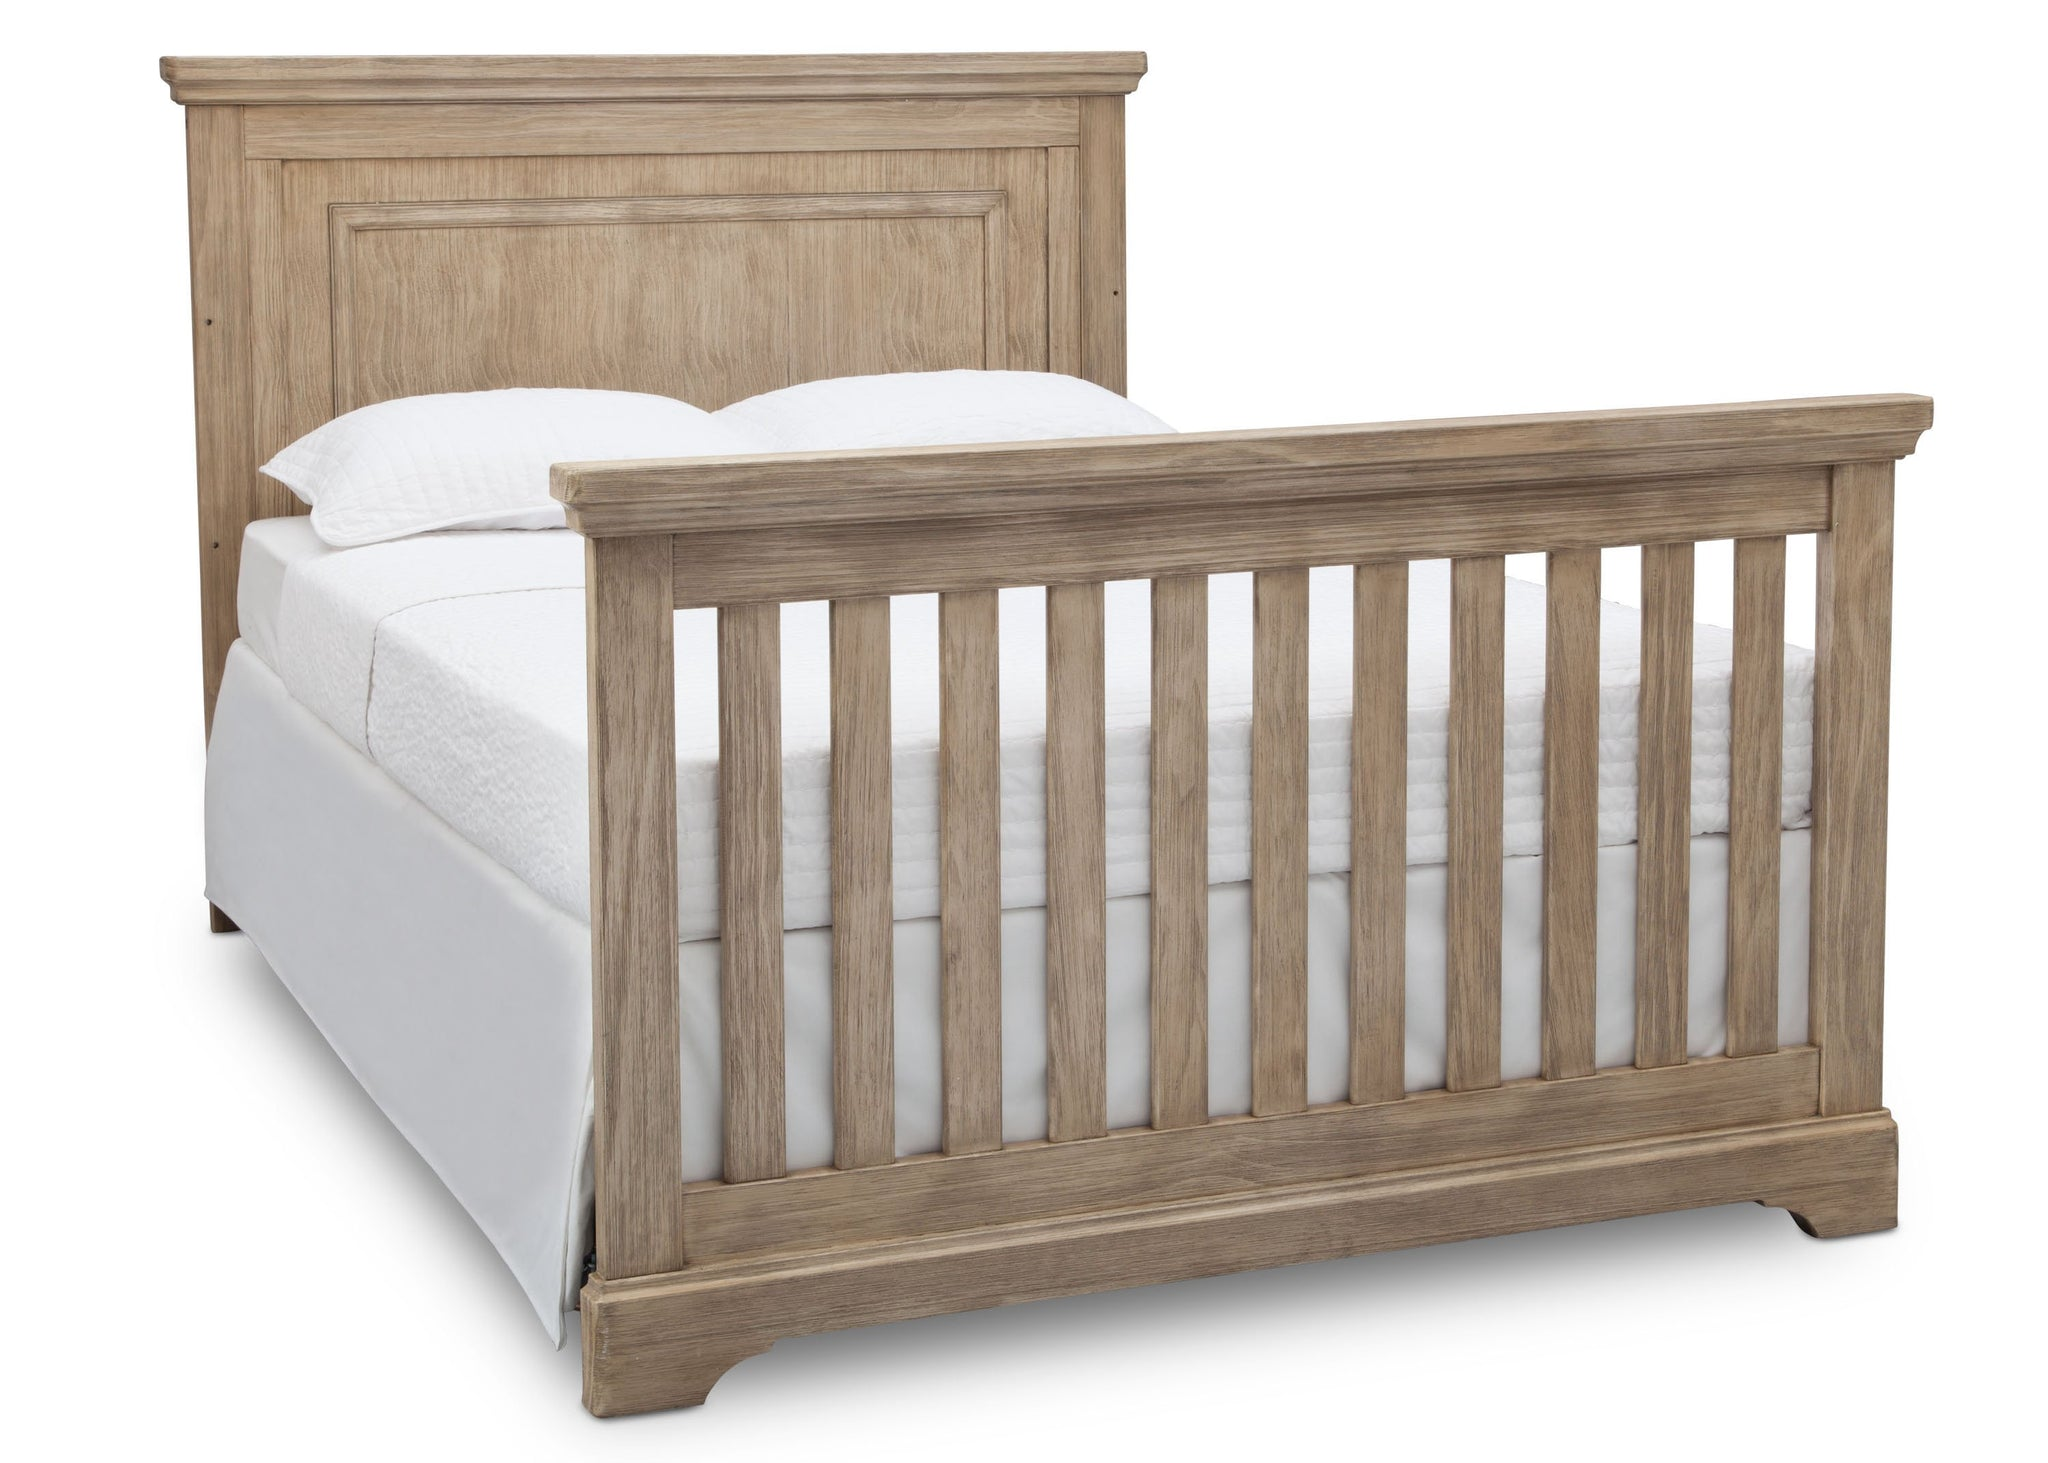 Simmons Rustic Driftwood (112) Paloma 4-in-1 Convertible Crib (328150), Silo FullBed, b6b